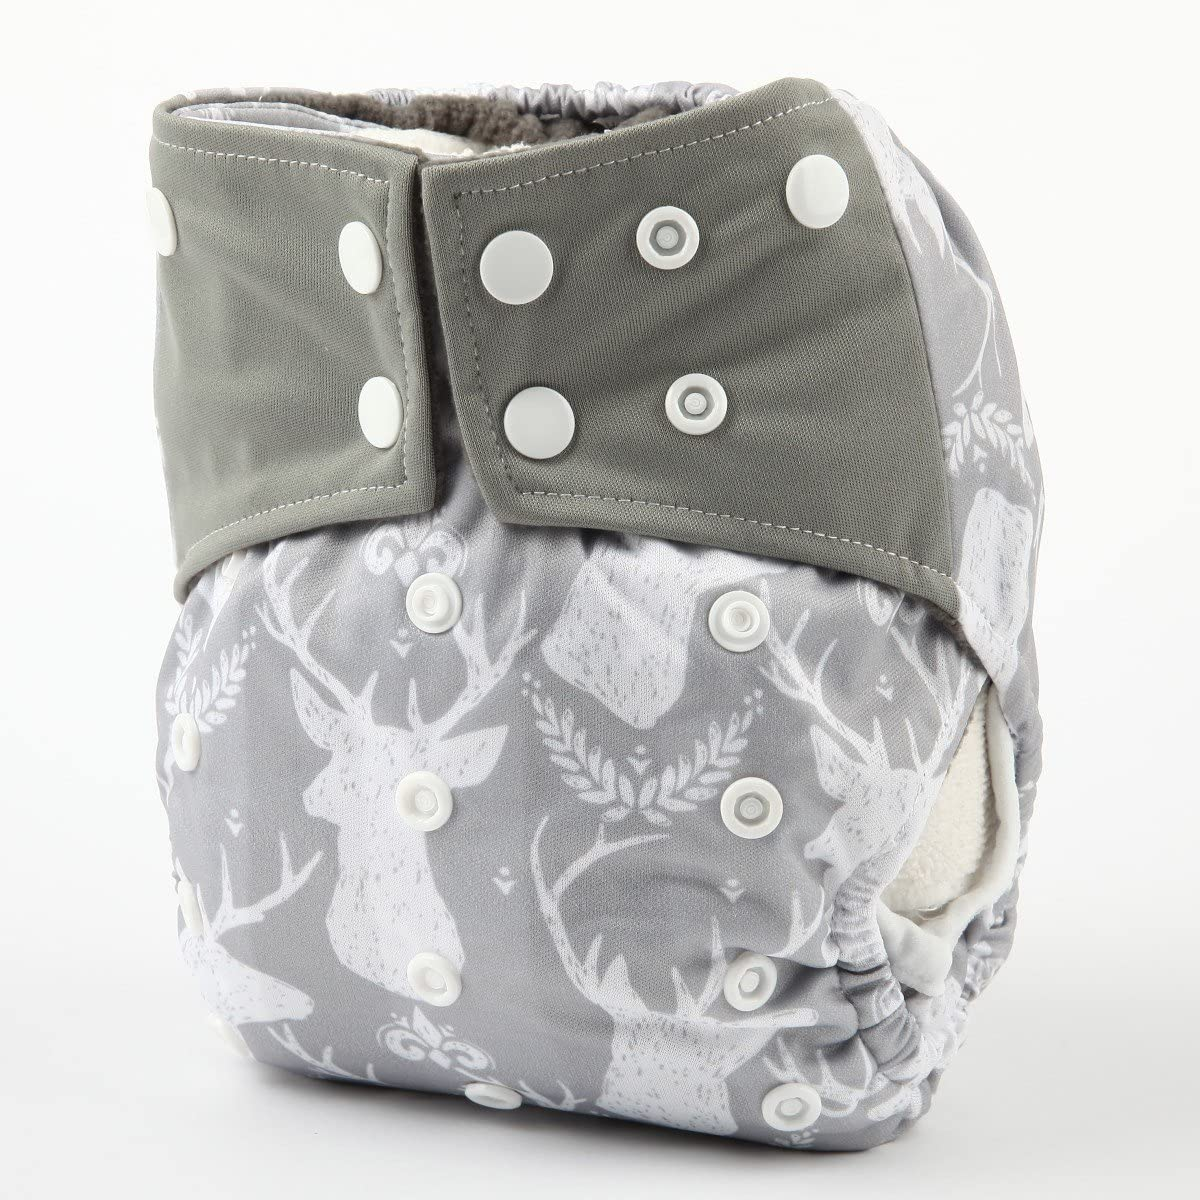 Baby Pocket Cloth Diaper Nappy Bamboo Charcoal Leg Gussets Washable Girls Hedgehog